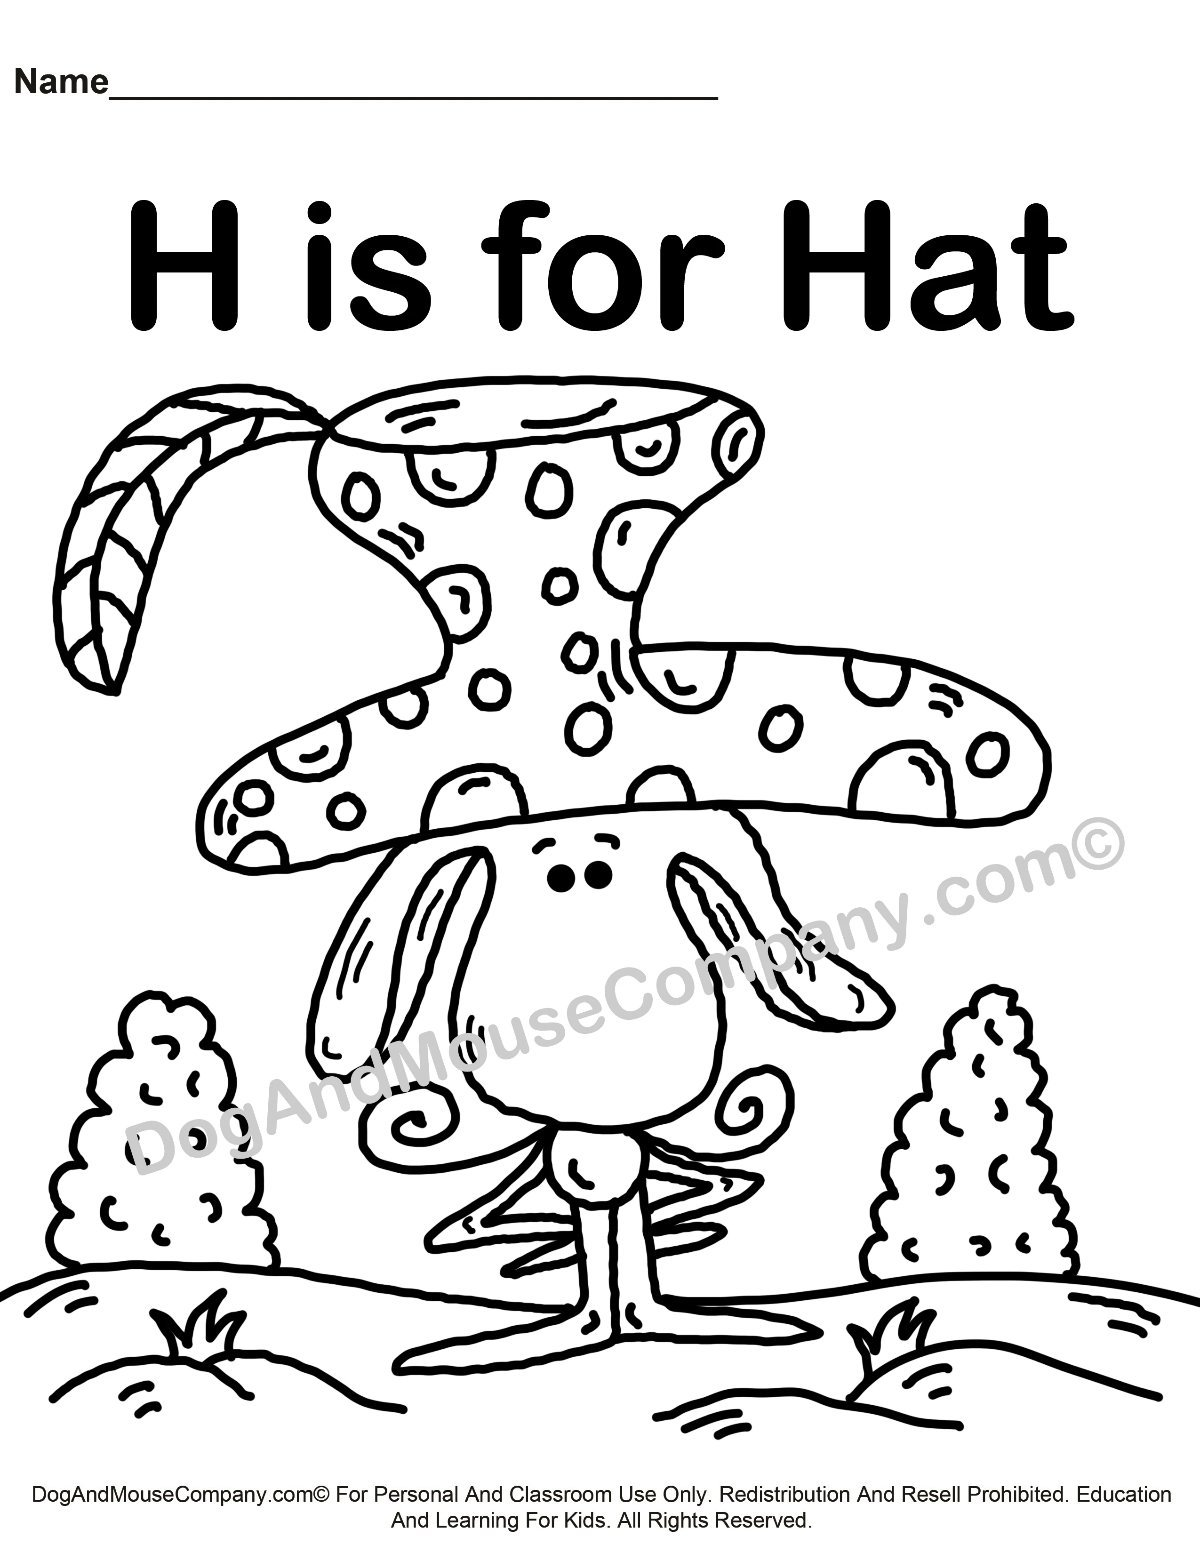 h is for hat heart hat house helicopter worksheet twisty noodle hat for is h